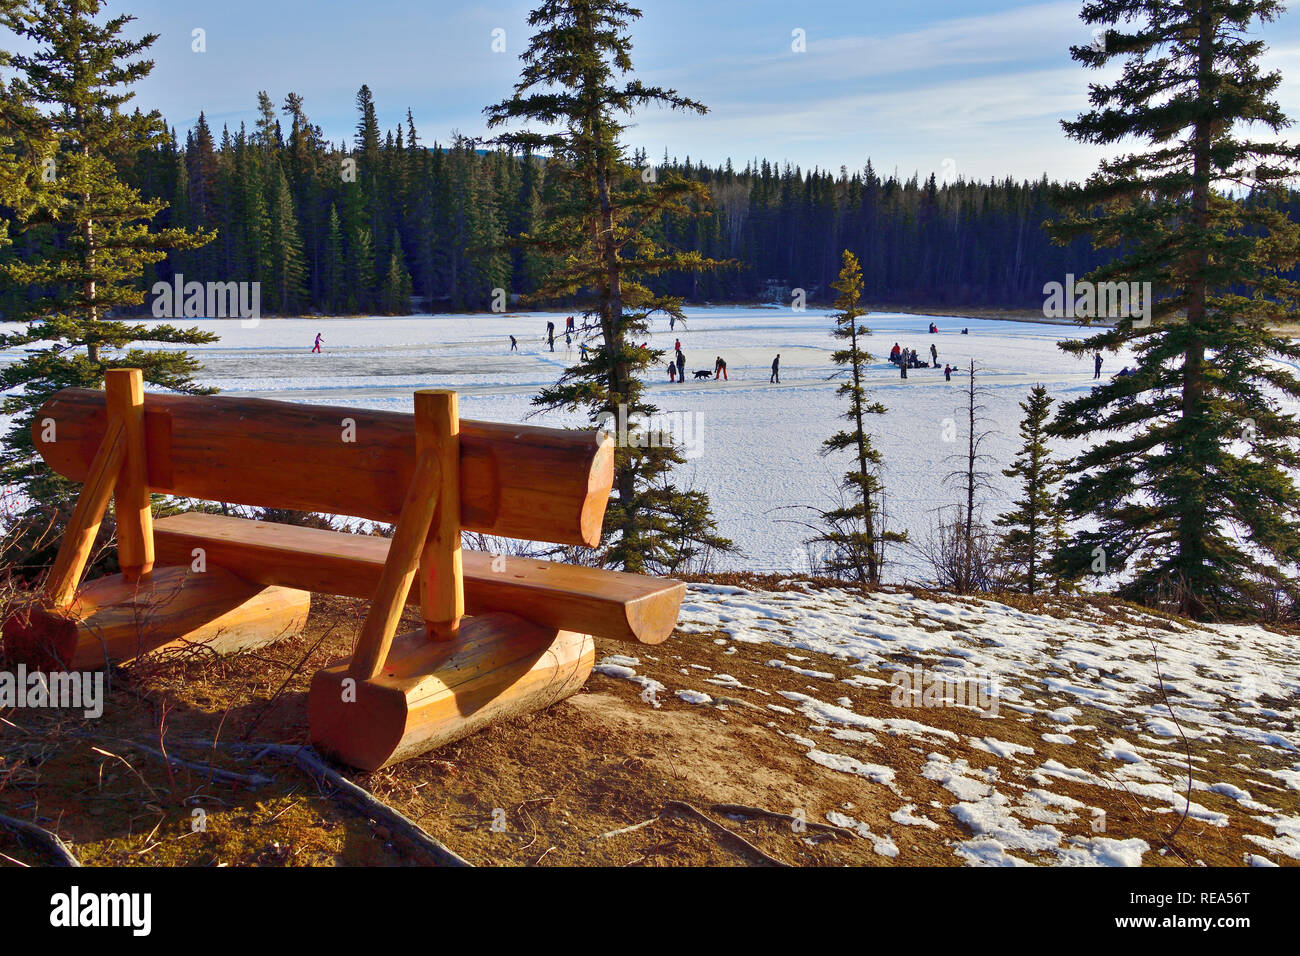 A winter landscape of an empty memorial bench on a viewpoint overlooking Maxwell Lake in Hinton Alberta Canada with people enjoying an outdoor ice ska - Stock Image